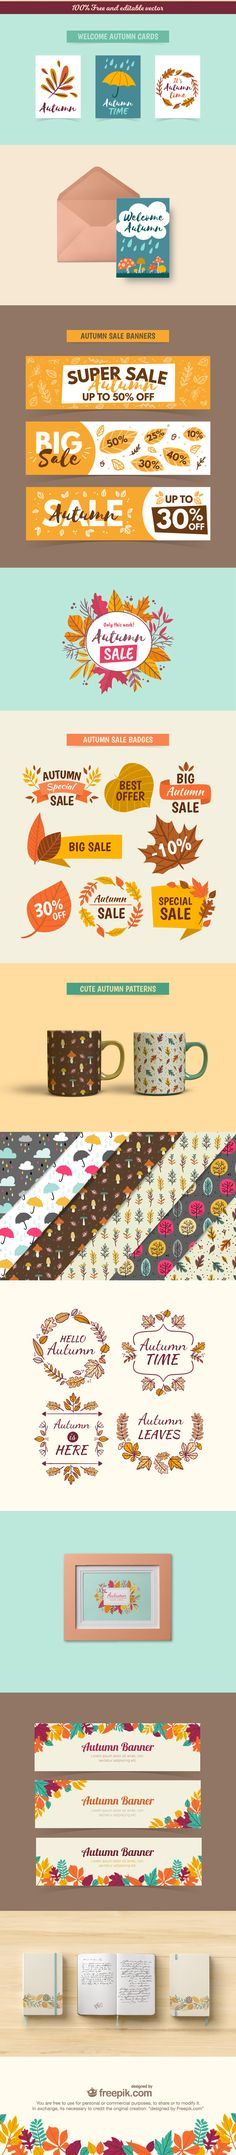 Free Download: Autumn Inspired Vectors (Cards, Banners, Badges, Patterns)